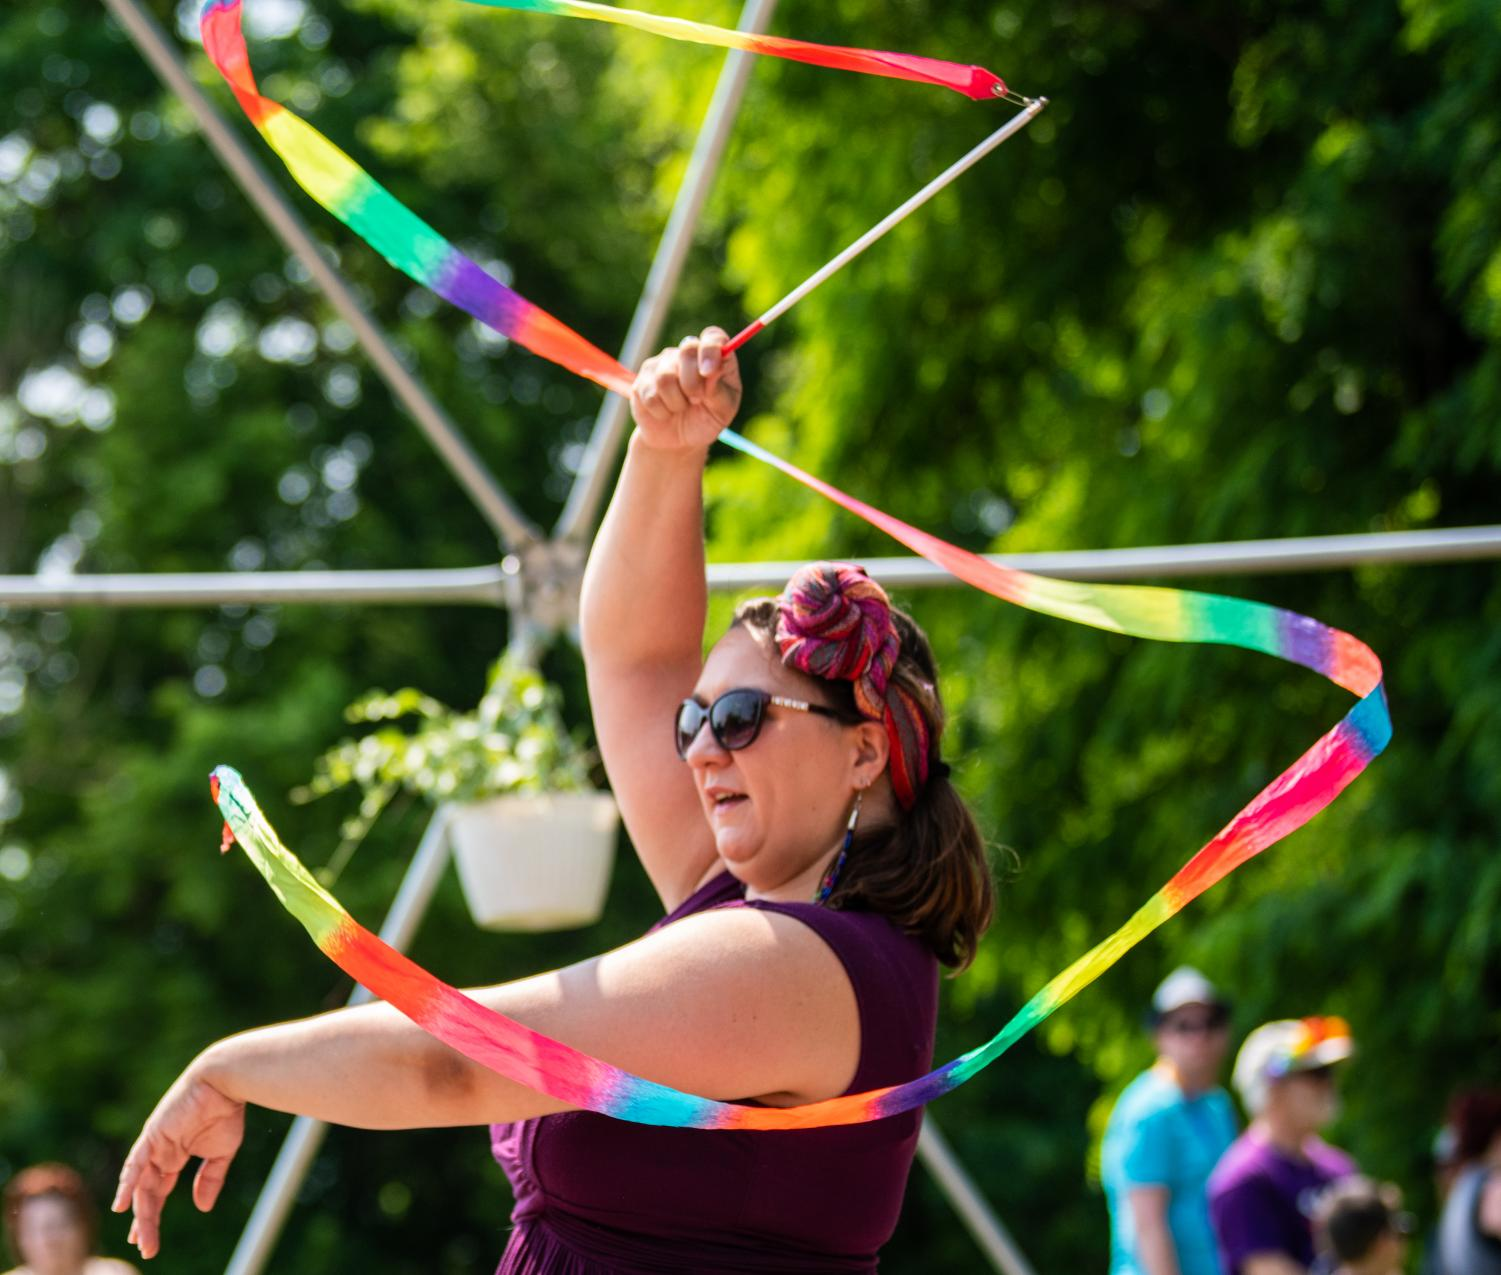 Bridget+Rose+twirls+with+a+ribbon+wand++inside+the+Labyrinth+Peace+Park+outside+the+Gaia+House+on+Saturday%2C+June+1%2C+2019+before+Carbondale%27s+second+annual+Pride+March.+Rose%2C+from+Carbondale%2C+came+to+the+event+with+her+six-year-old+Luca+Rose.+Rose+says+that+it+is+extremely+important+queer+community+to+come+together.+%22It%27s+not+a+hypothetical+for+us.+This+is+our+wellbeing%2C+our+lives%2C+us+being+able+to+love+each+other+and+ourselves%2C%22+Rose+said.+